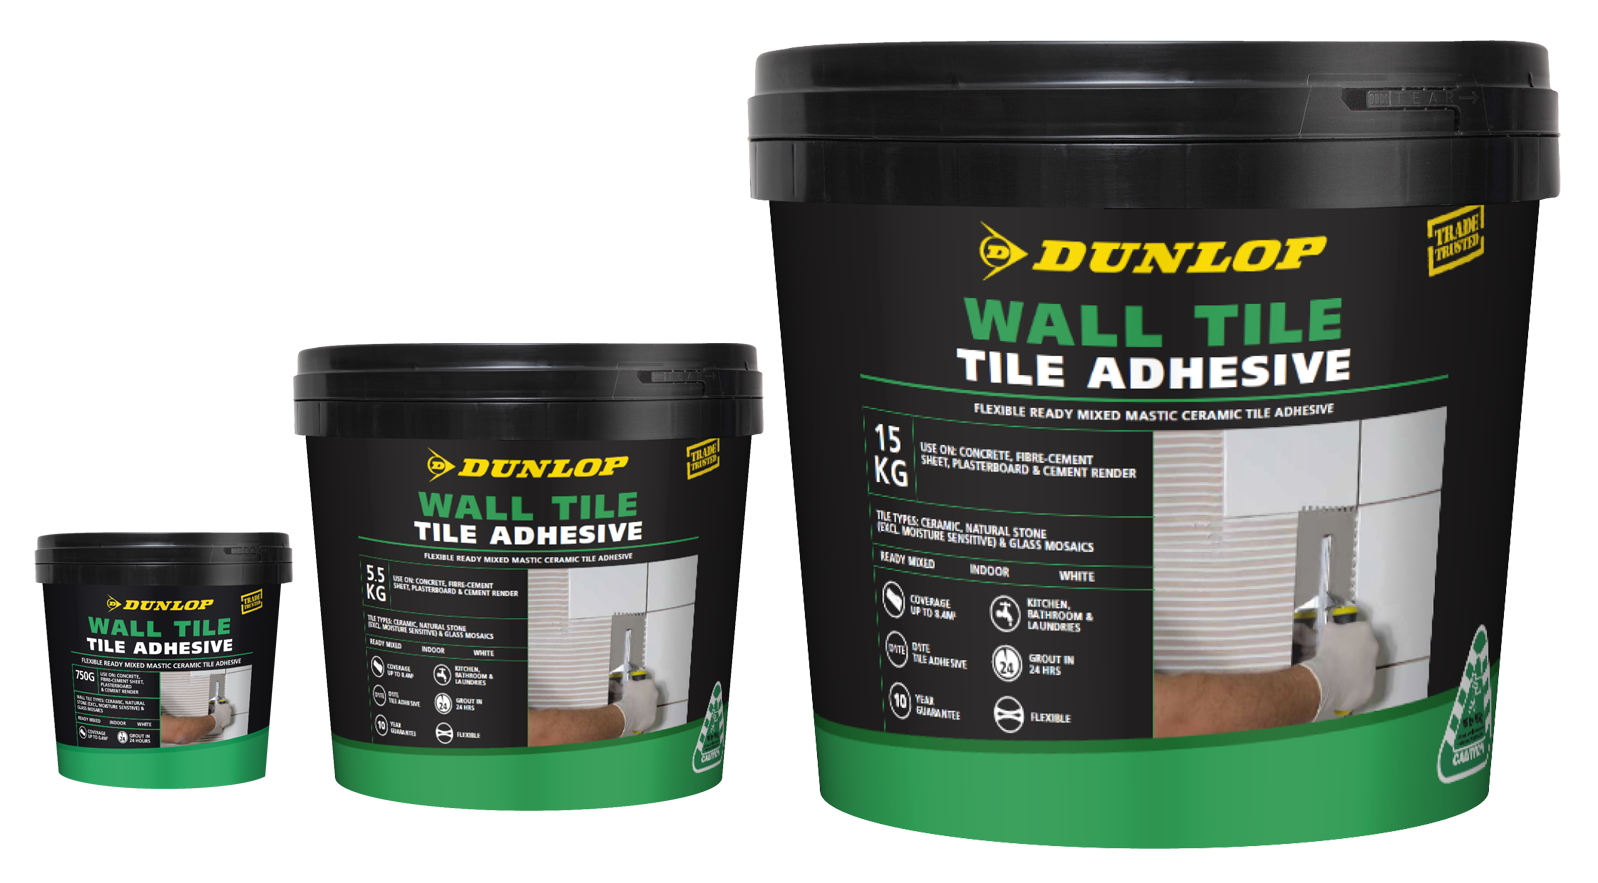 to show all three DUNLOP wall tile adhesive products in a group packshot